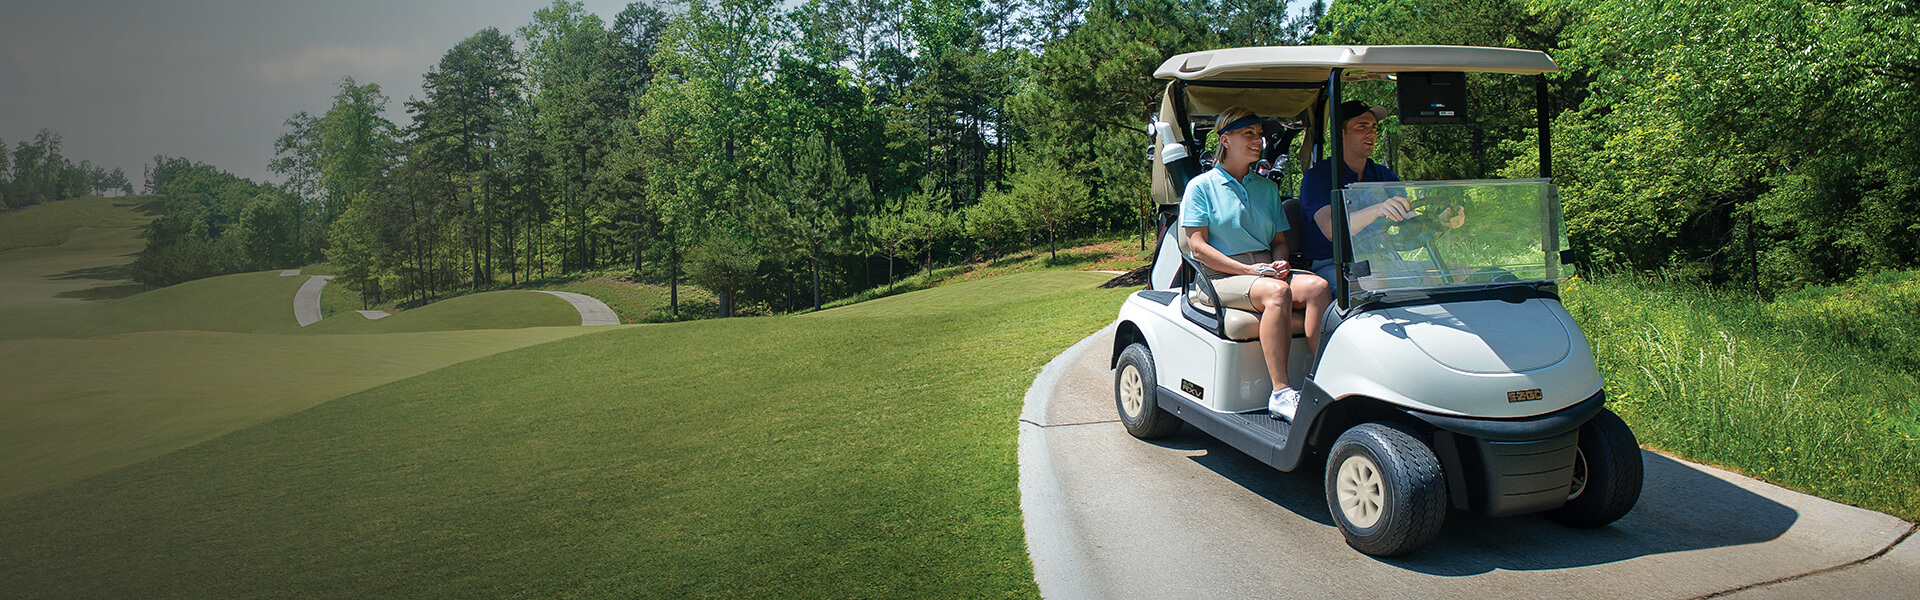 Man and woman riding in an E-Z-GO golf cart on a green golf course.